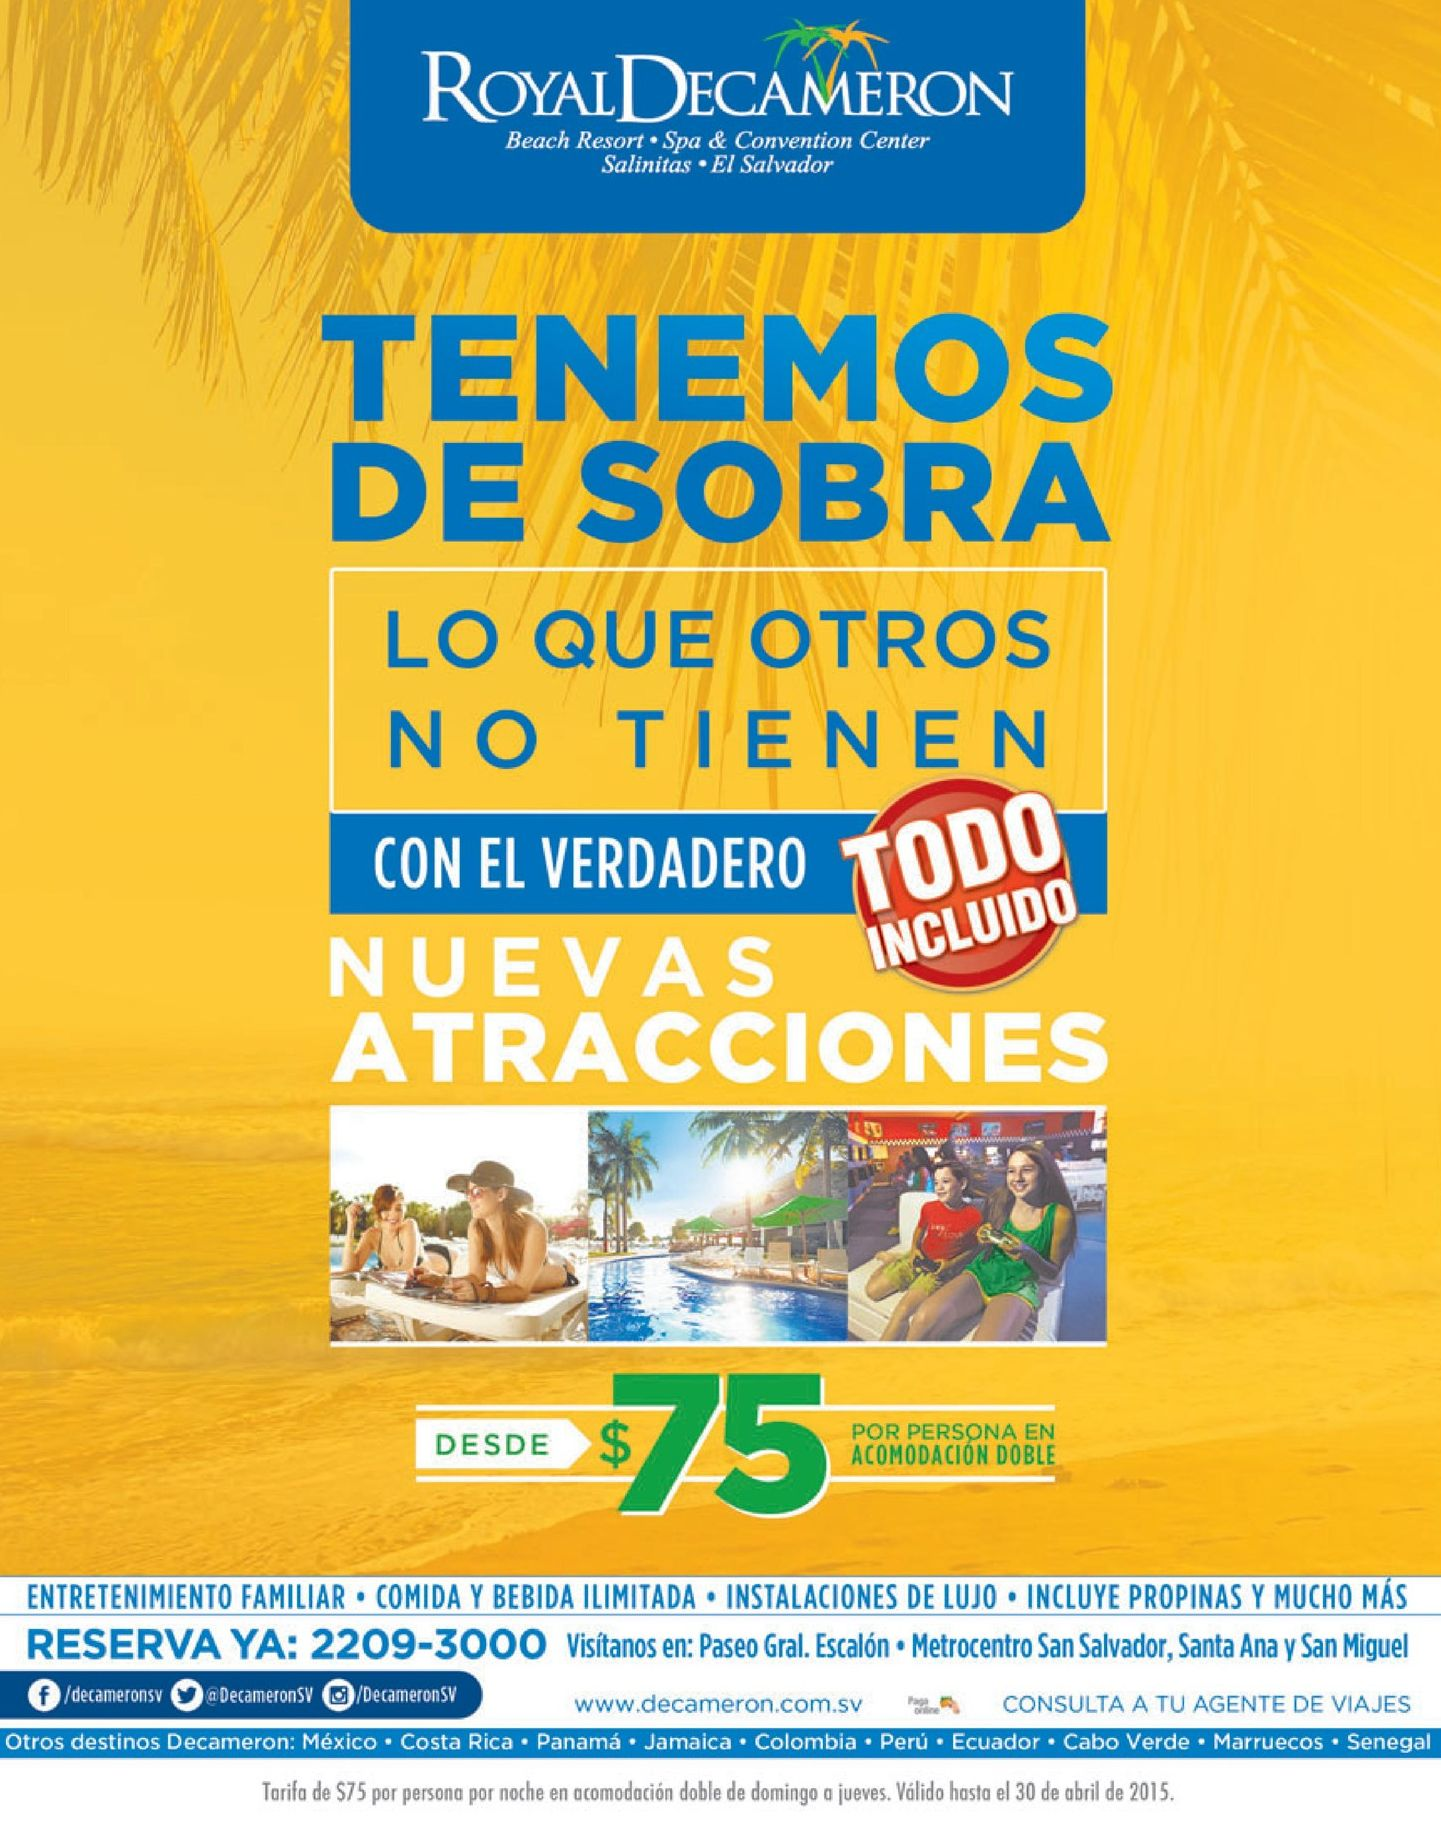 All inclusive promotions ROYAL DECAMERON new attractions